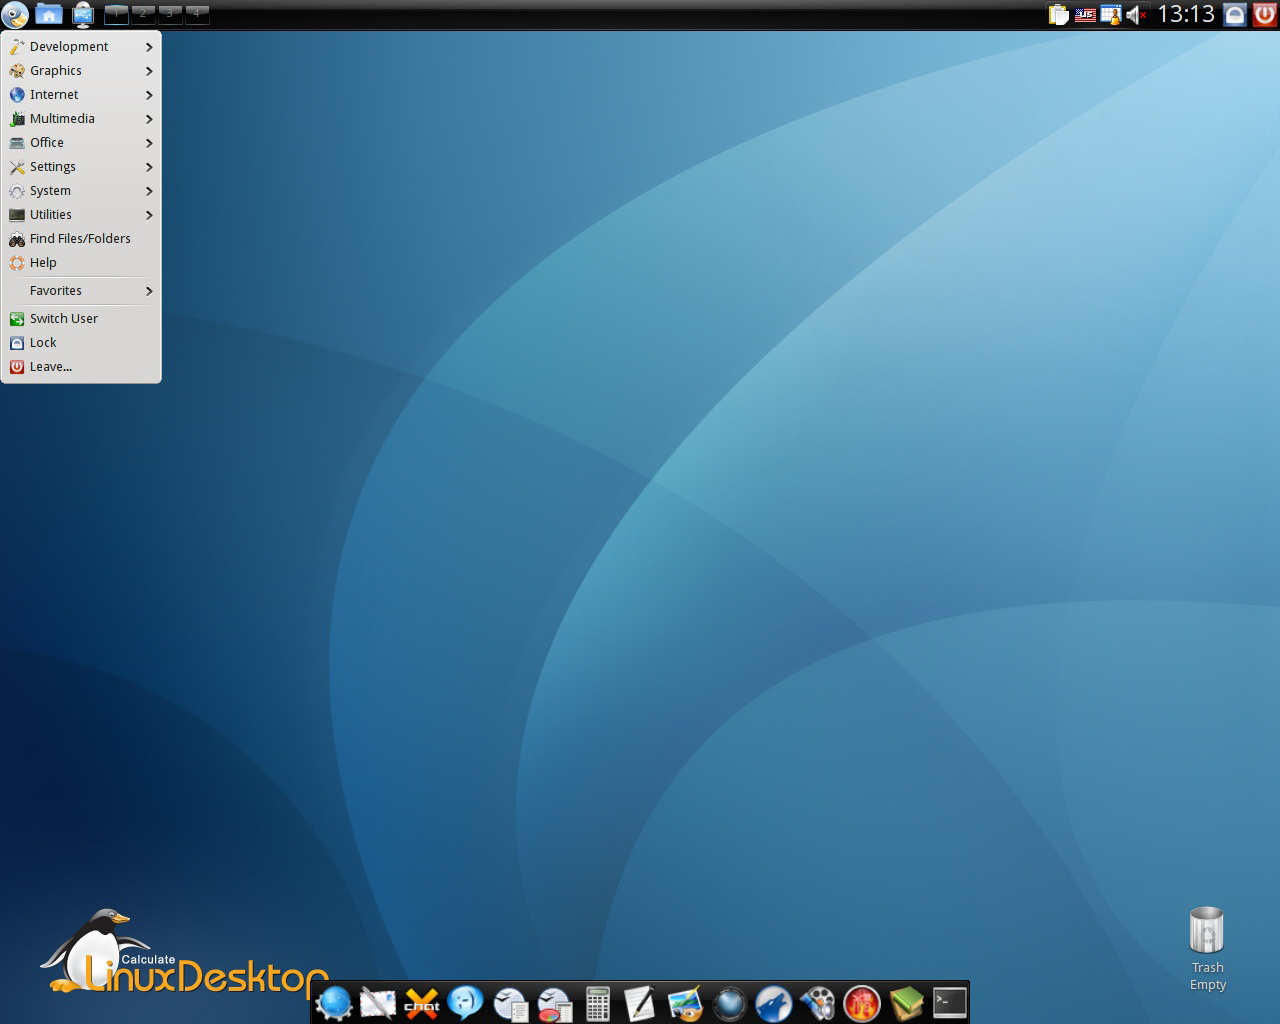 Calculate Linux Desktop截图1